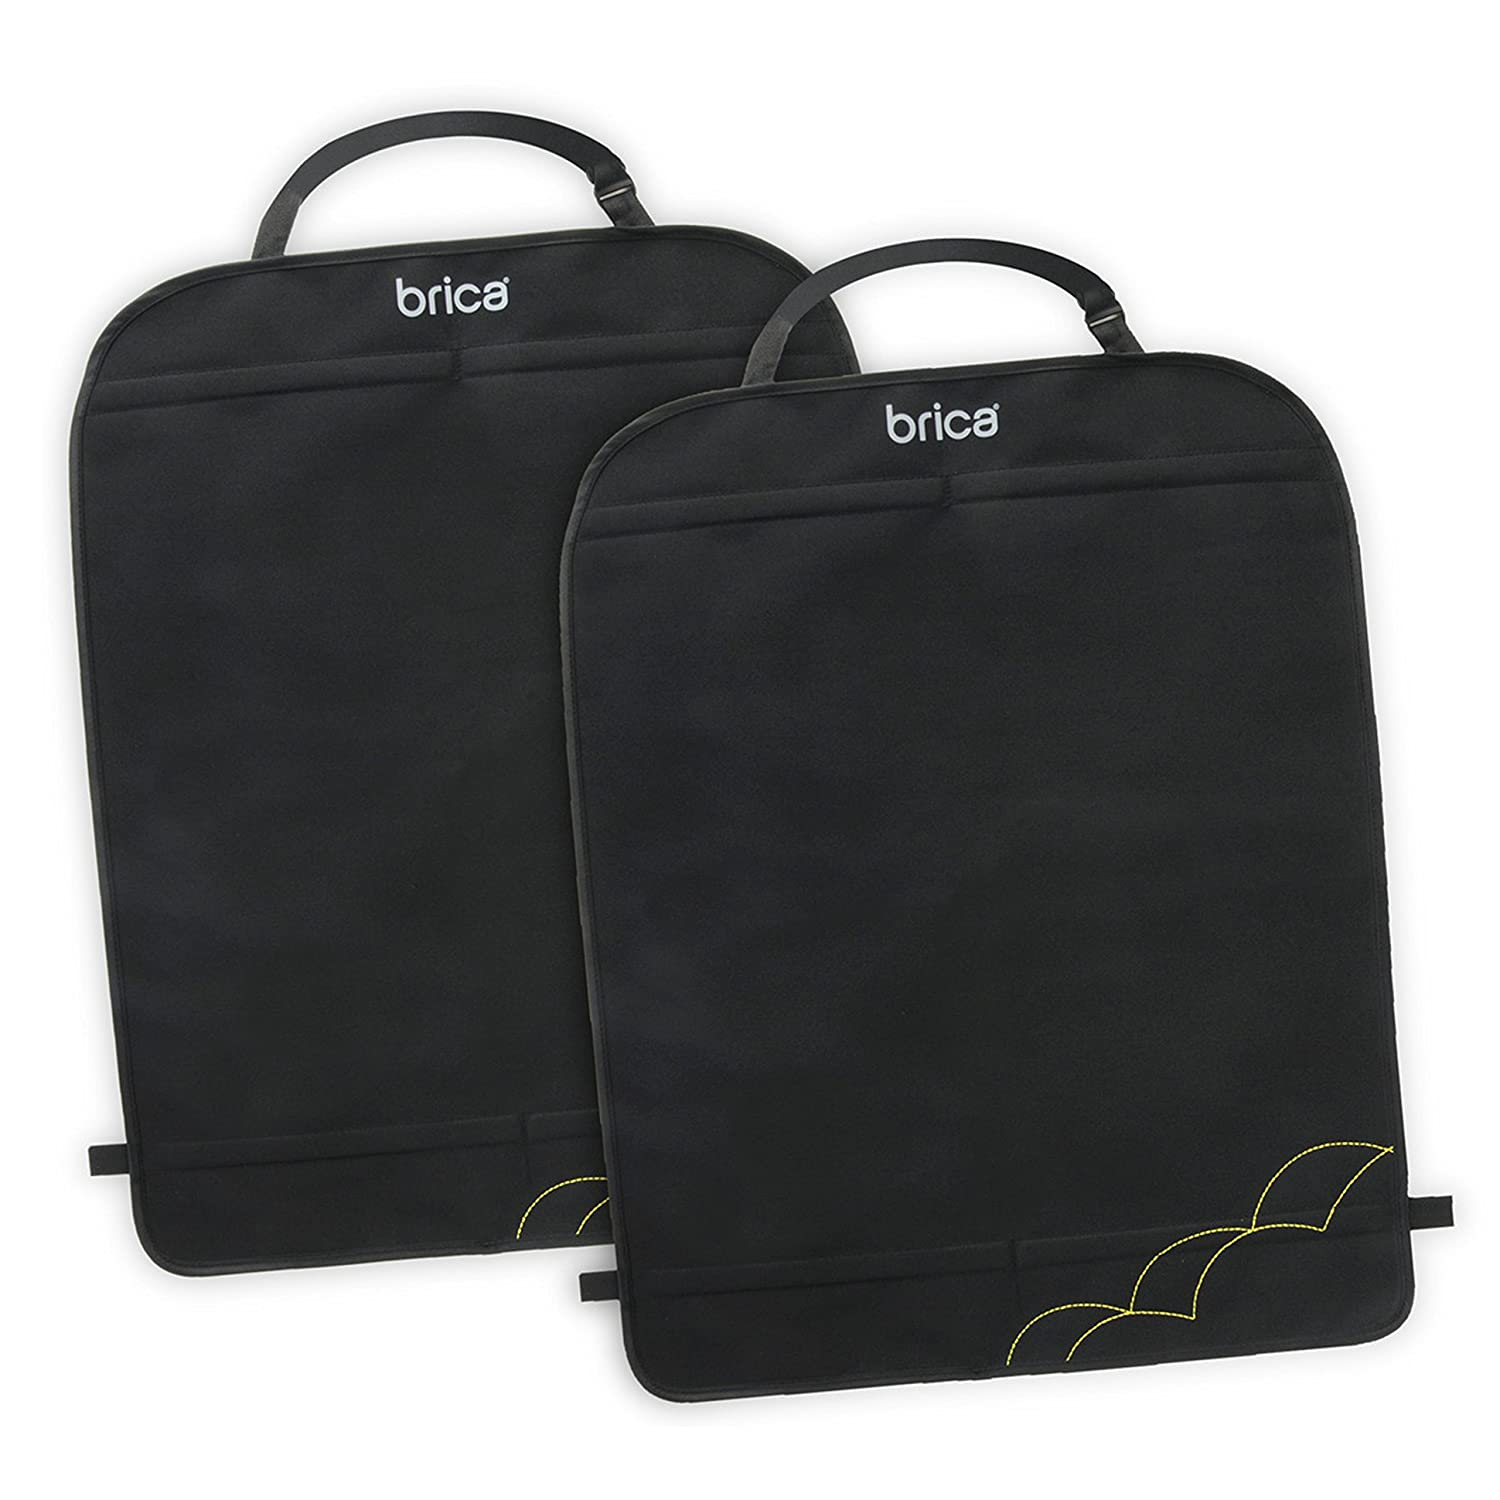 Brica Deluxe Kick Mats, 2 Count 64015